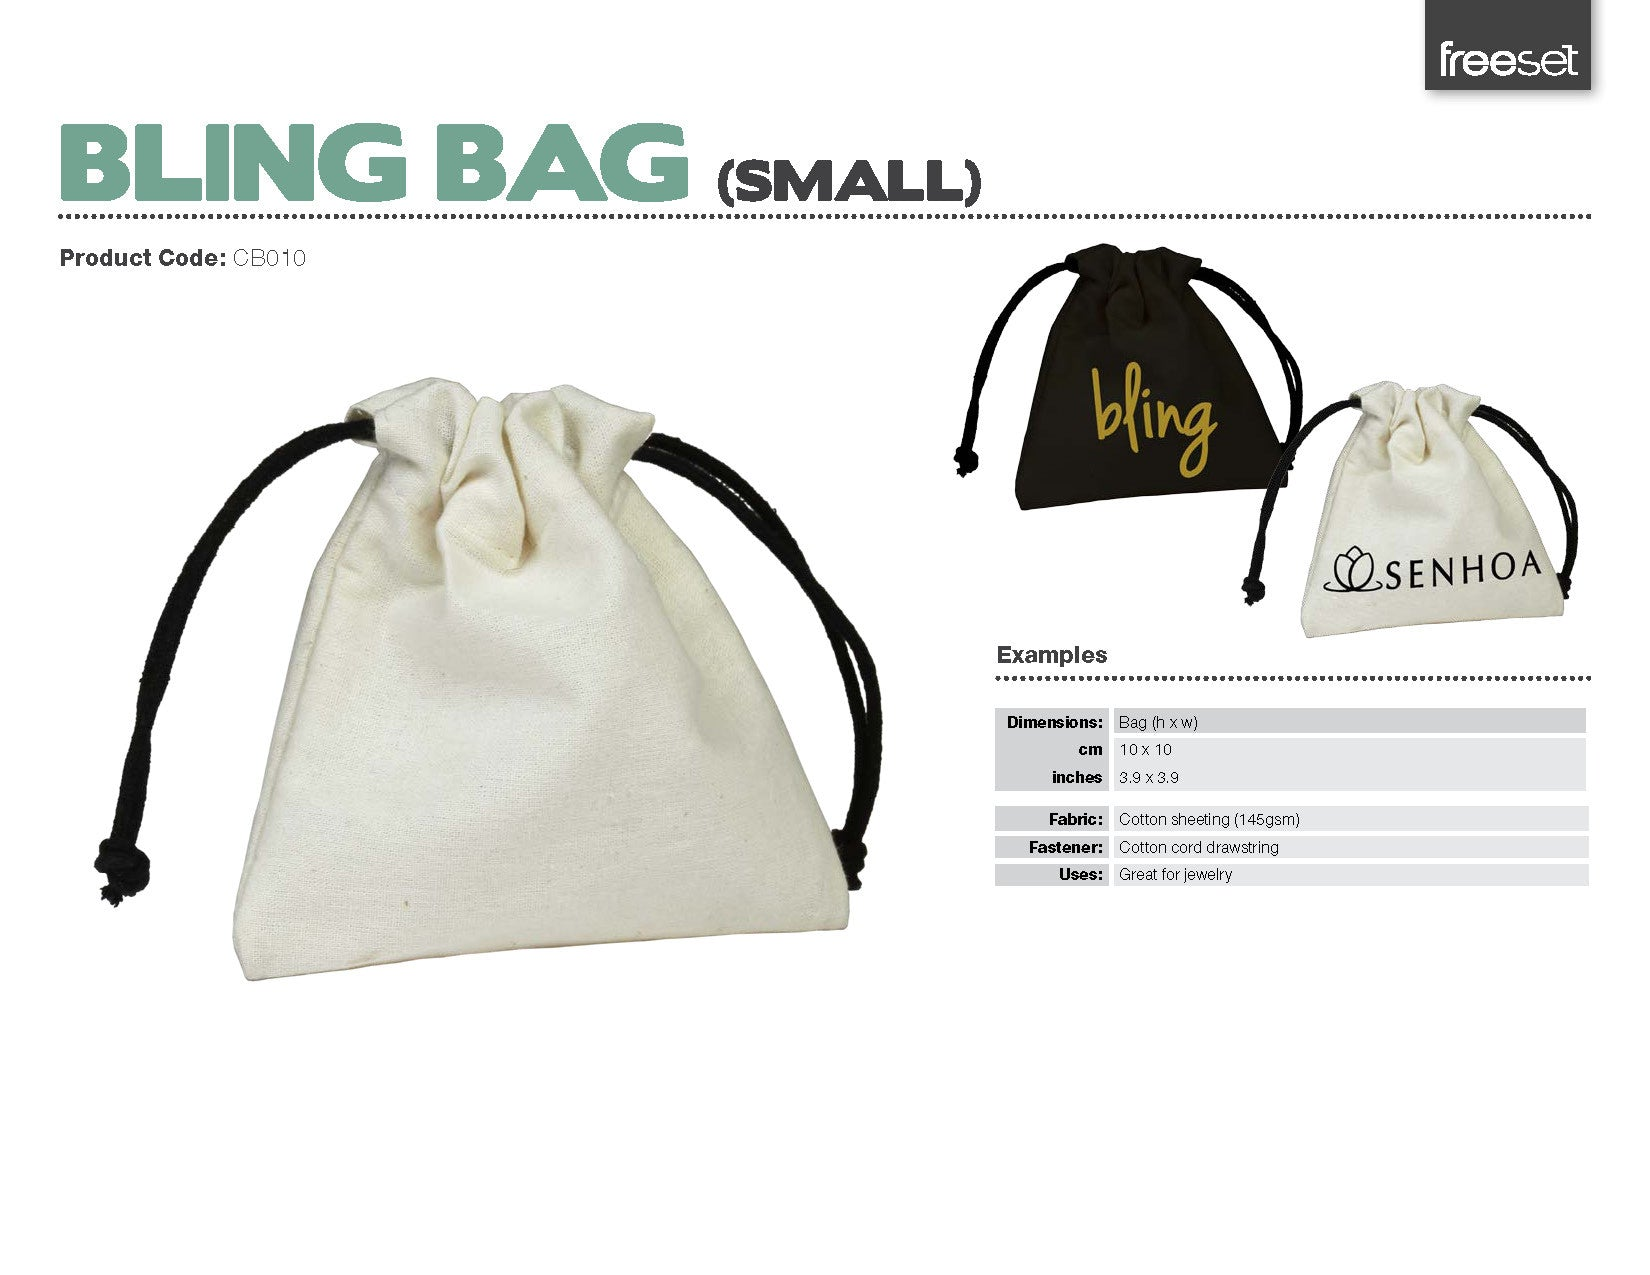 Bling | Small, Medium & Large